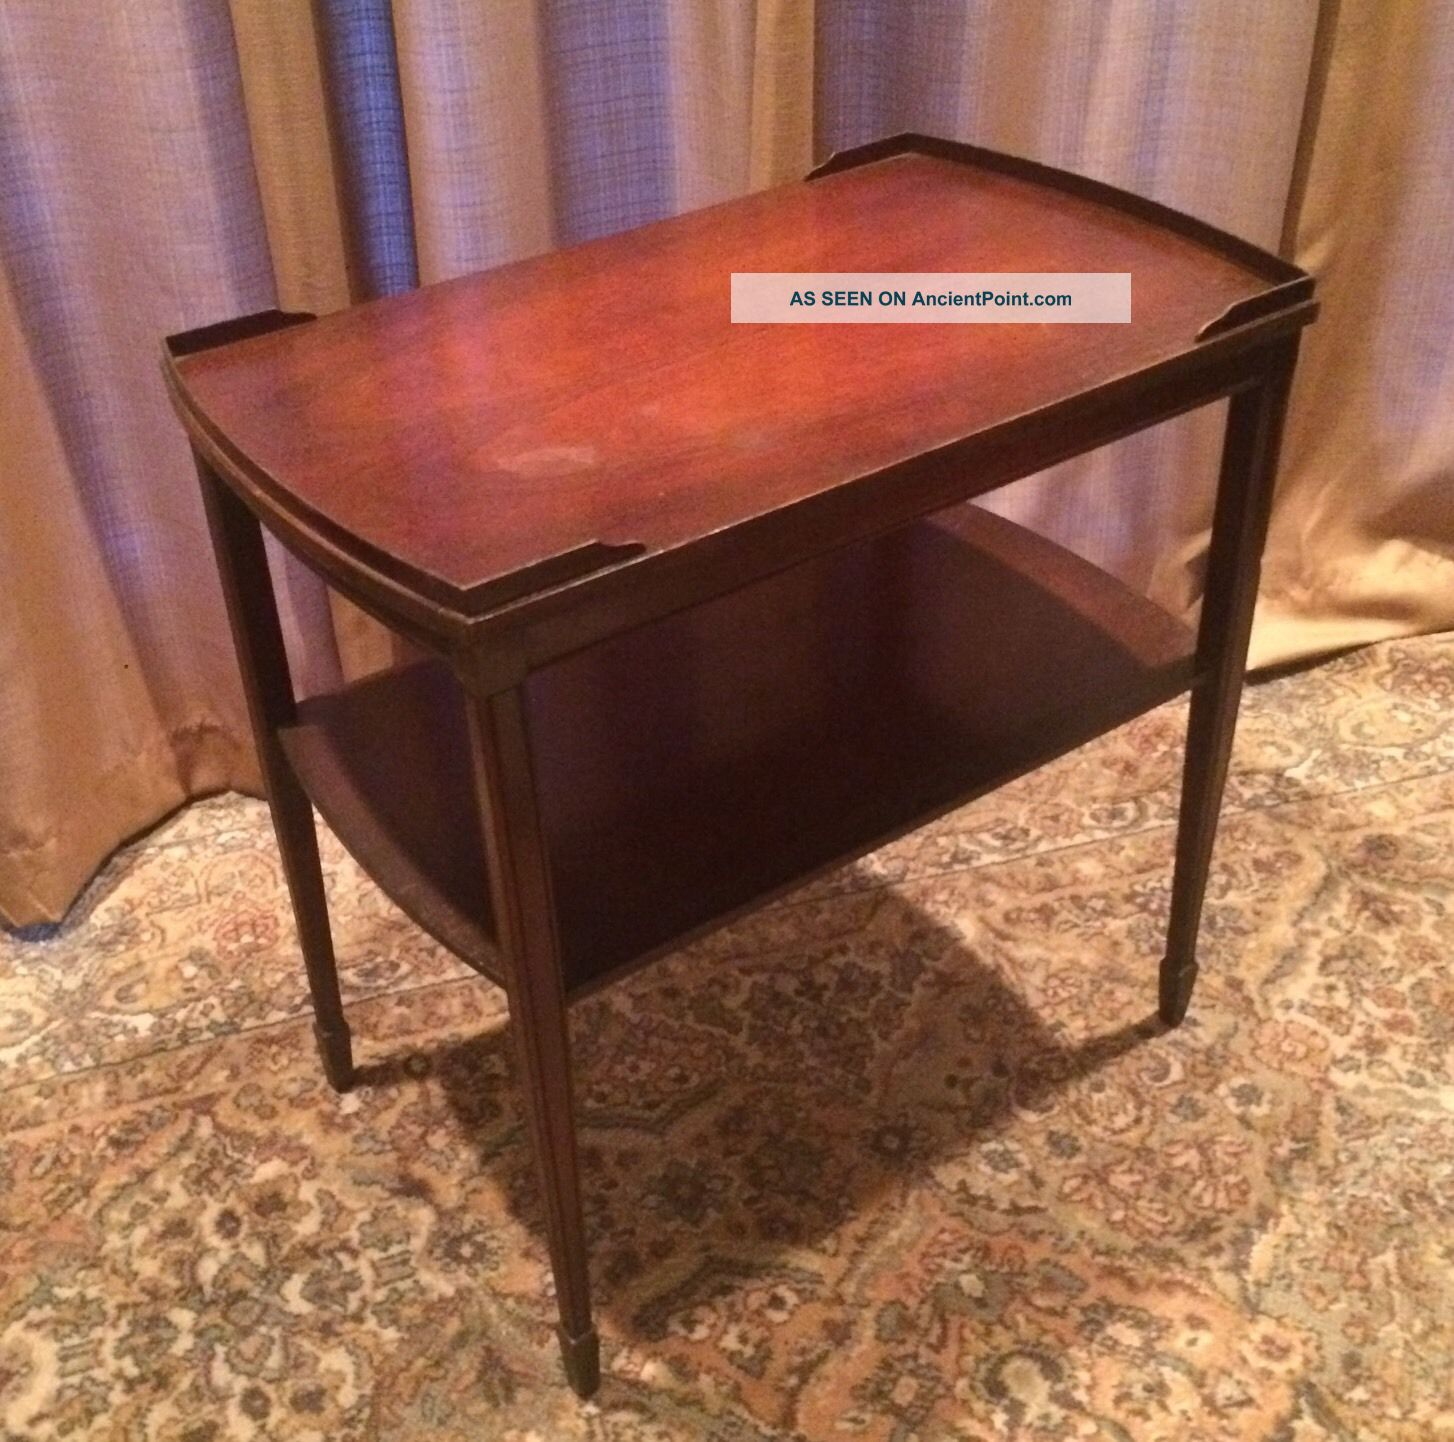 Rare Zangerle & Peterson Chicago Side Table Spade Foot Two Tiered Vintage 411 1900-1950 photo